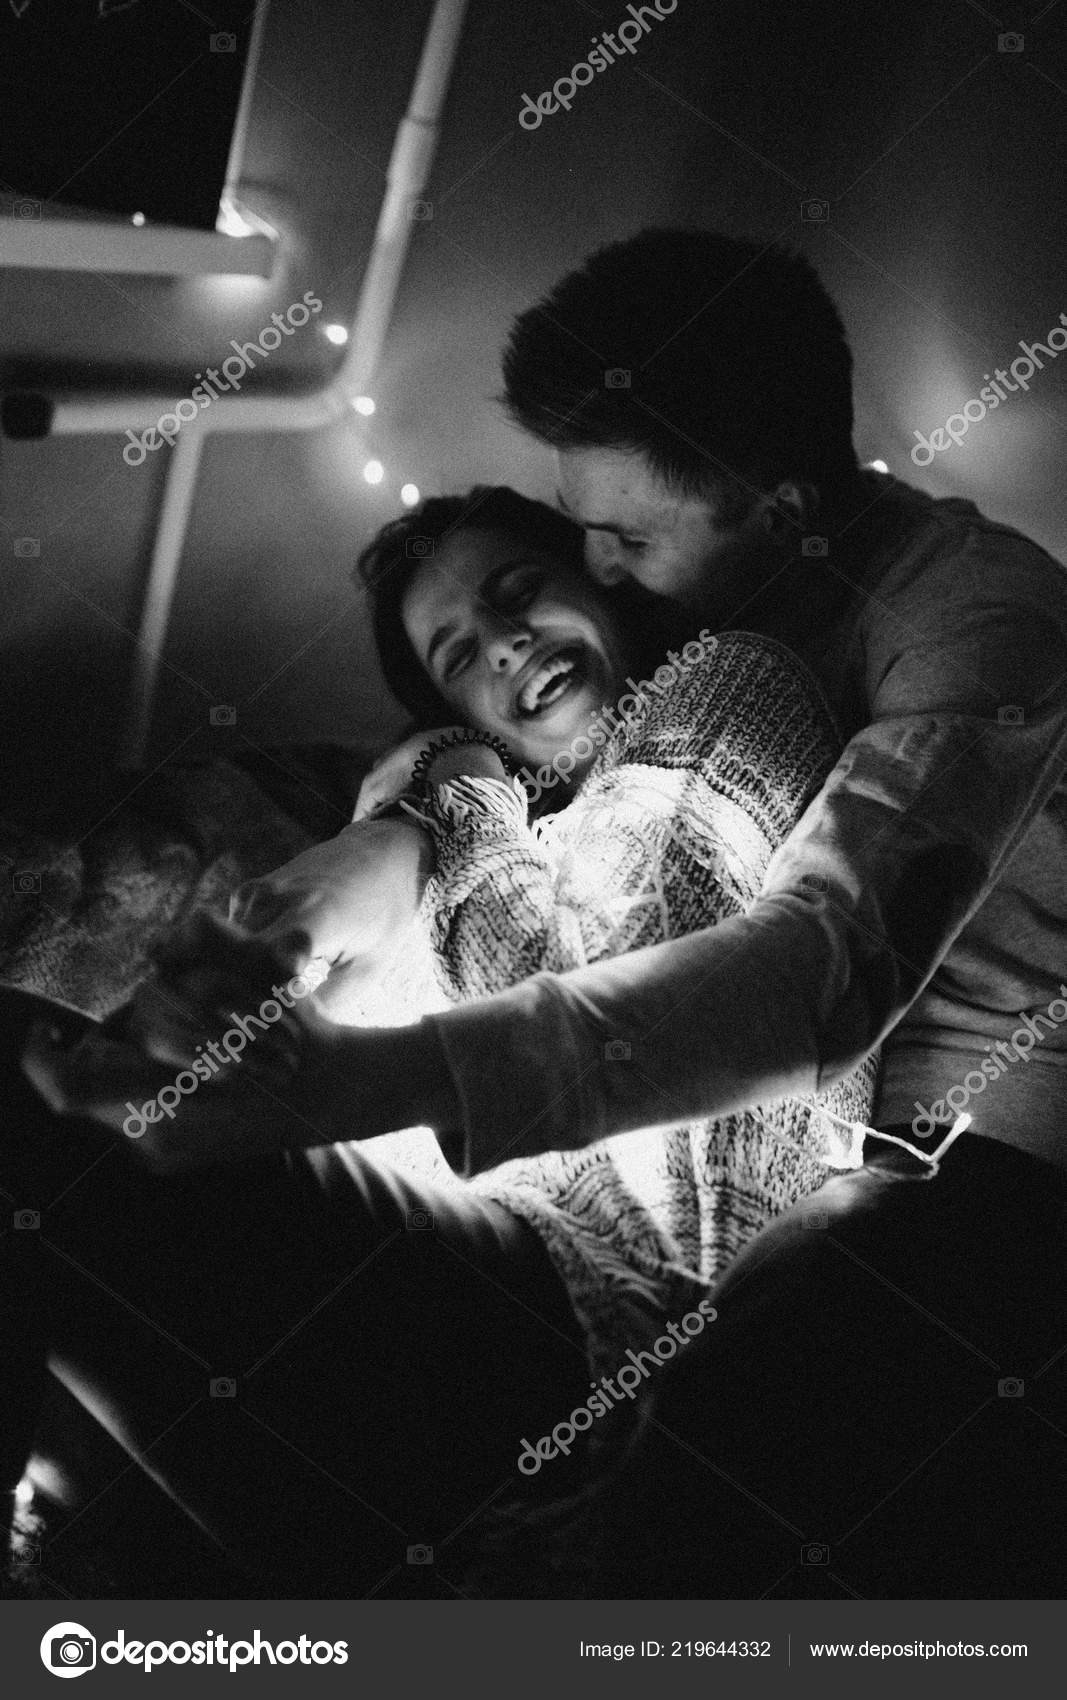 Loving couple hug each other on the bed wrapping in garland in bedroom black and white photo with noise filter photo by